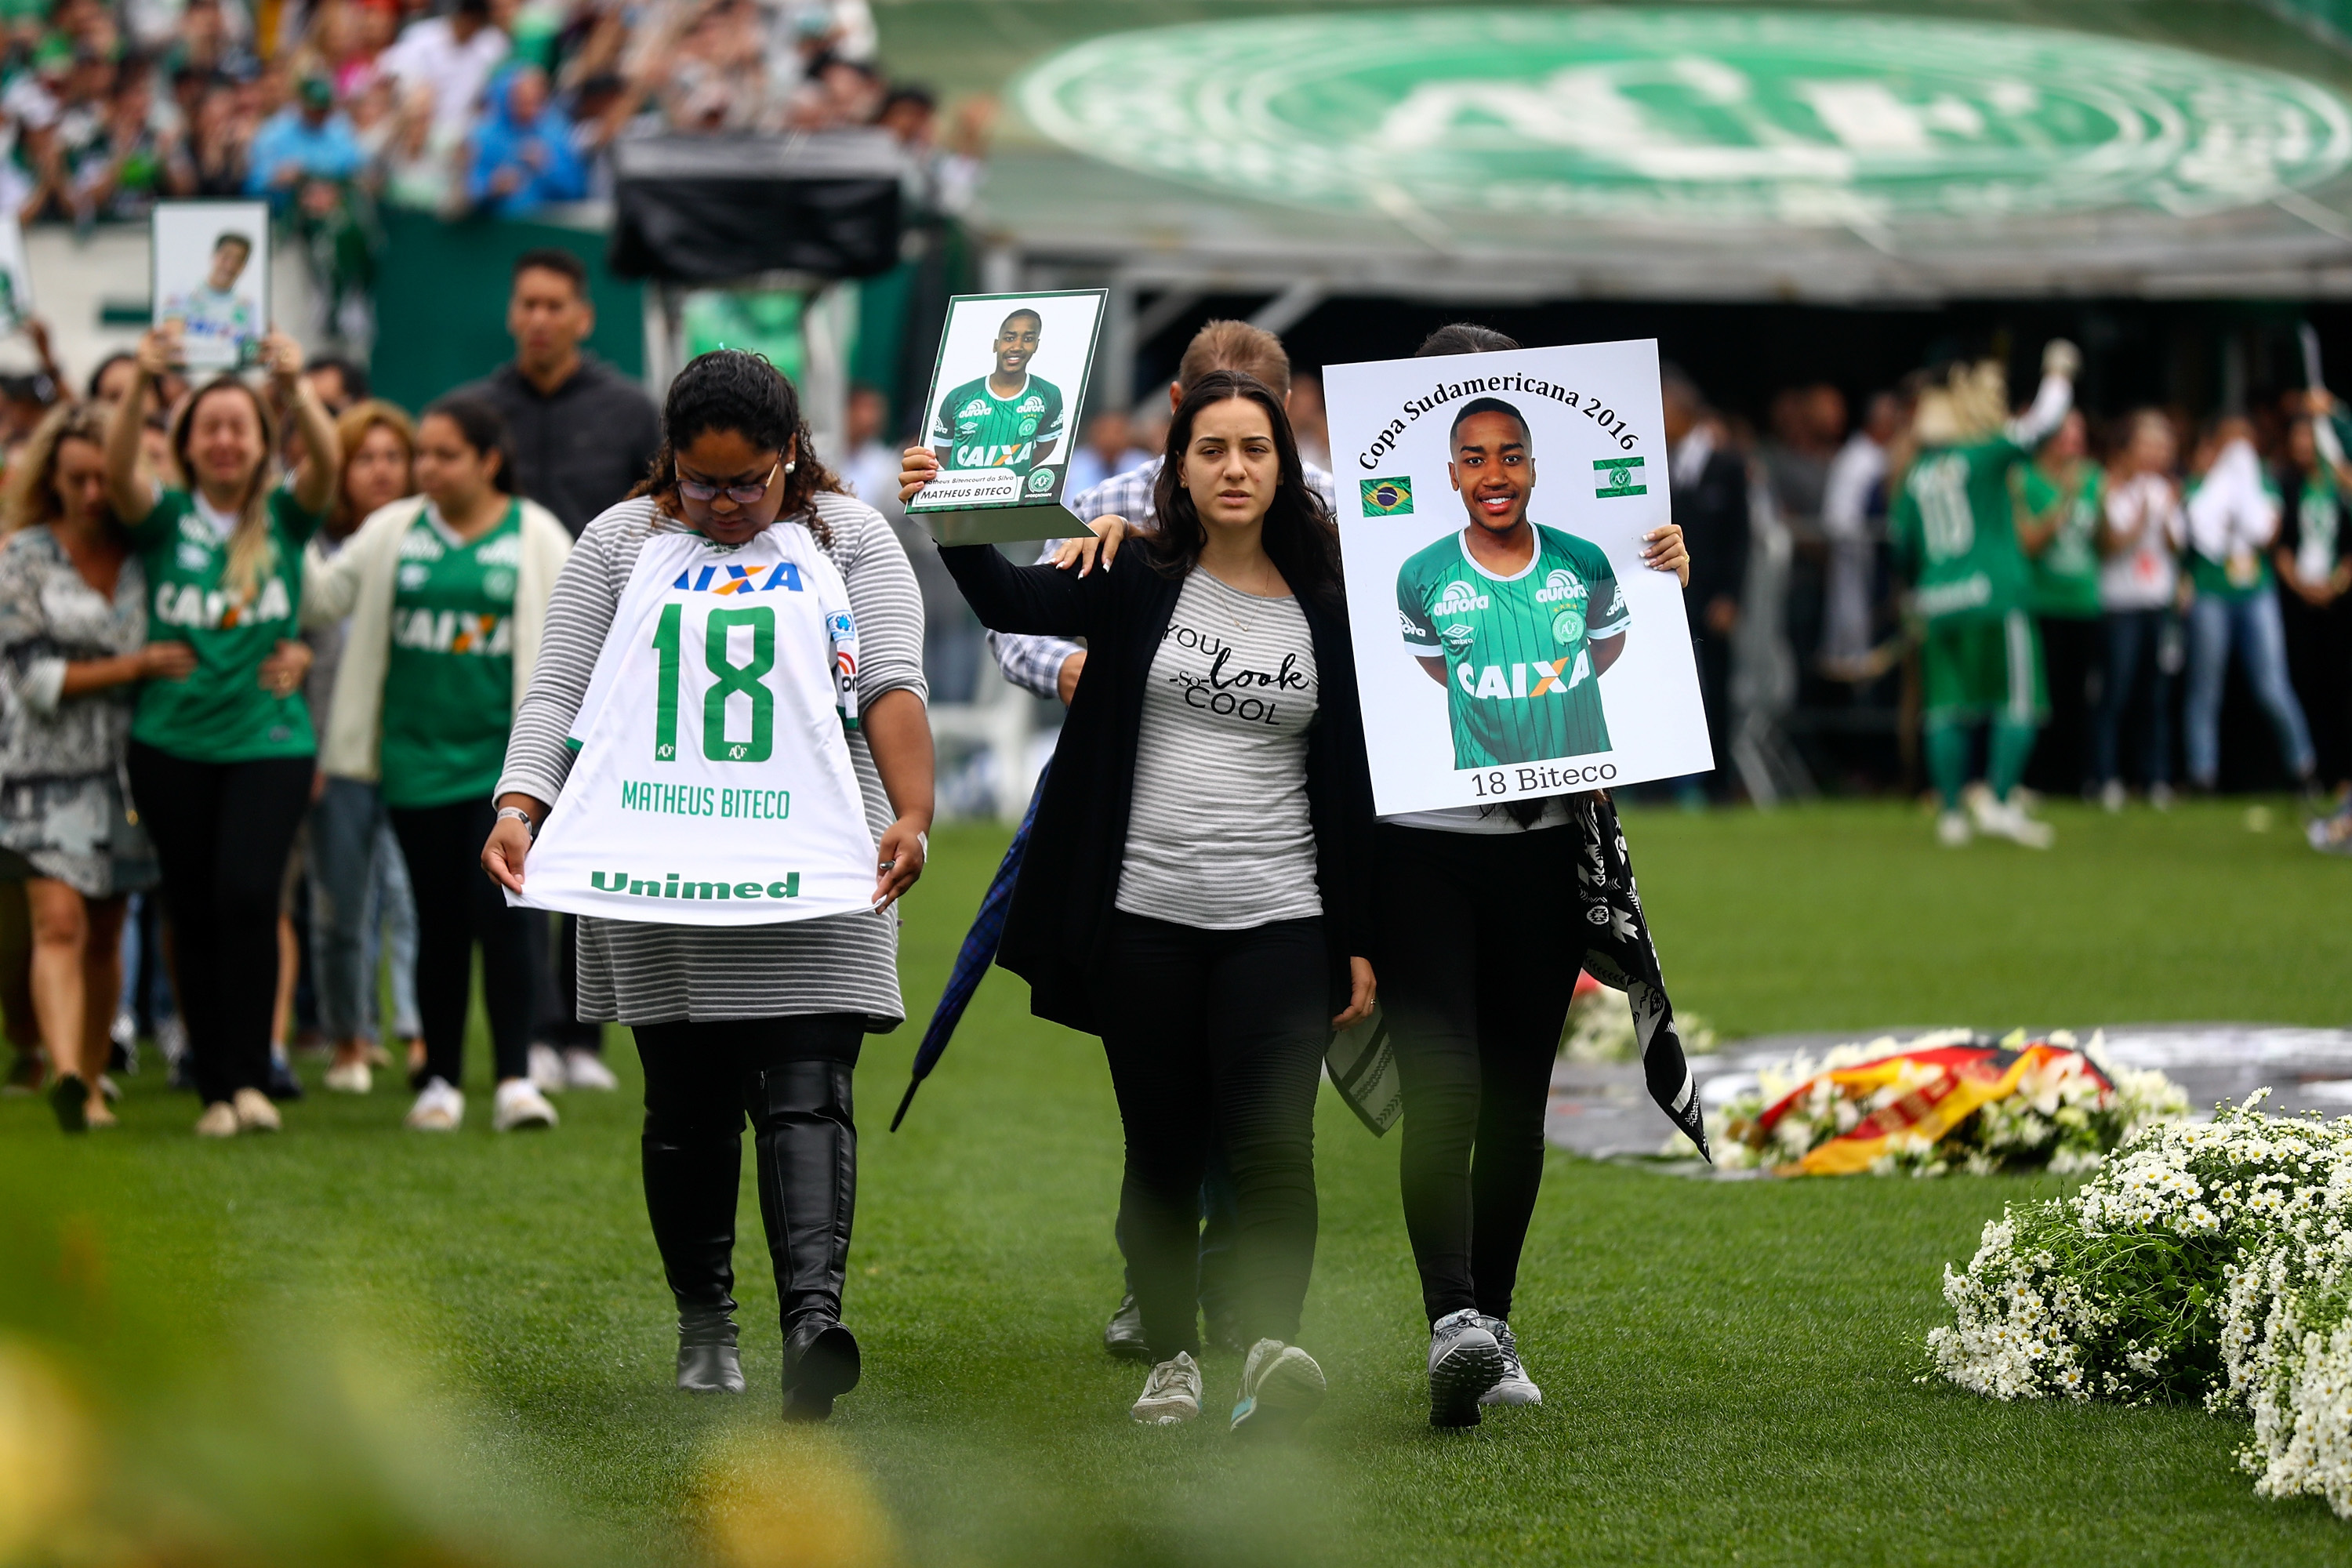 Tributes paid to the players  (Buda Mendes/Getty Images)